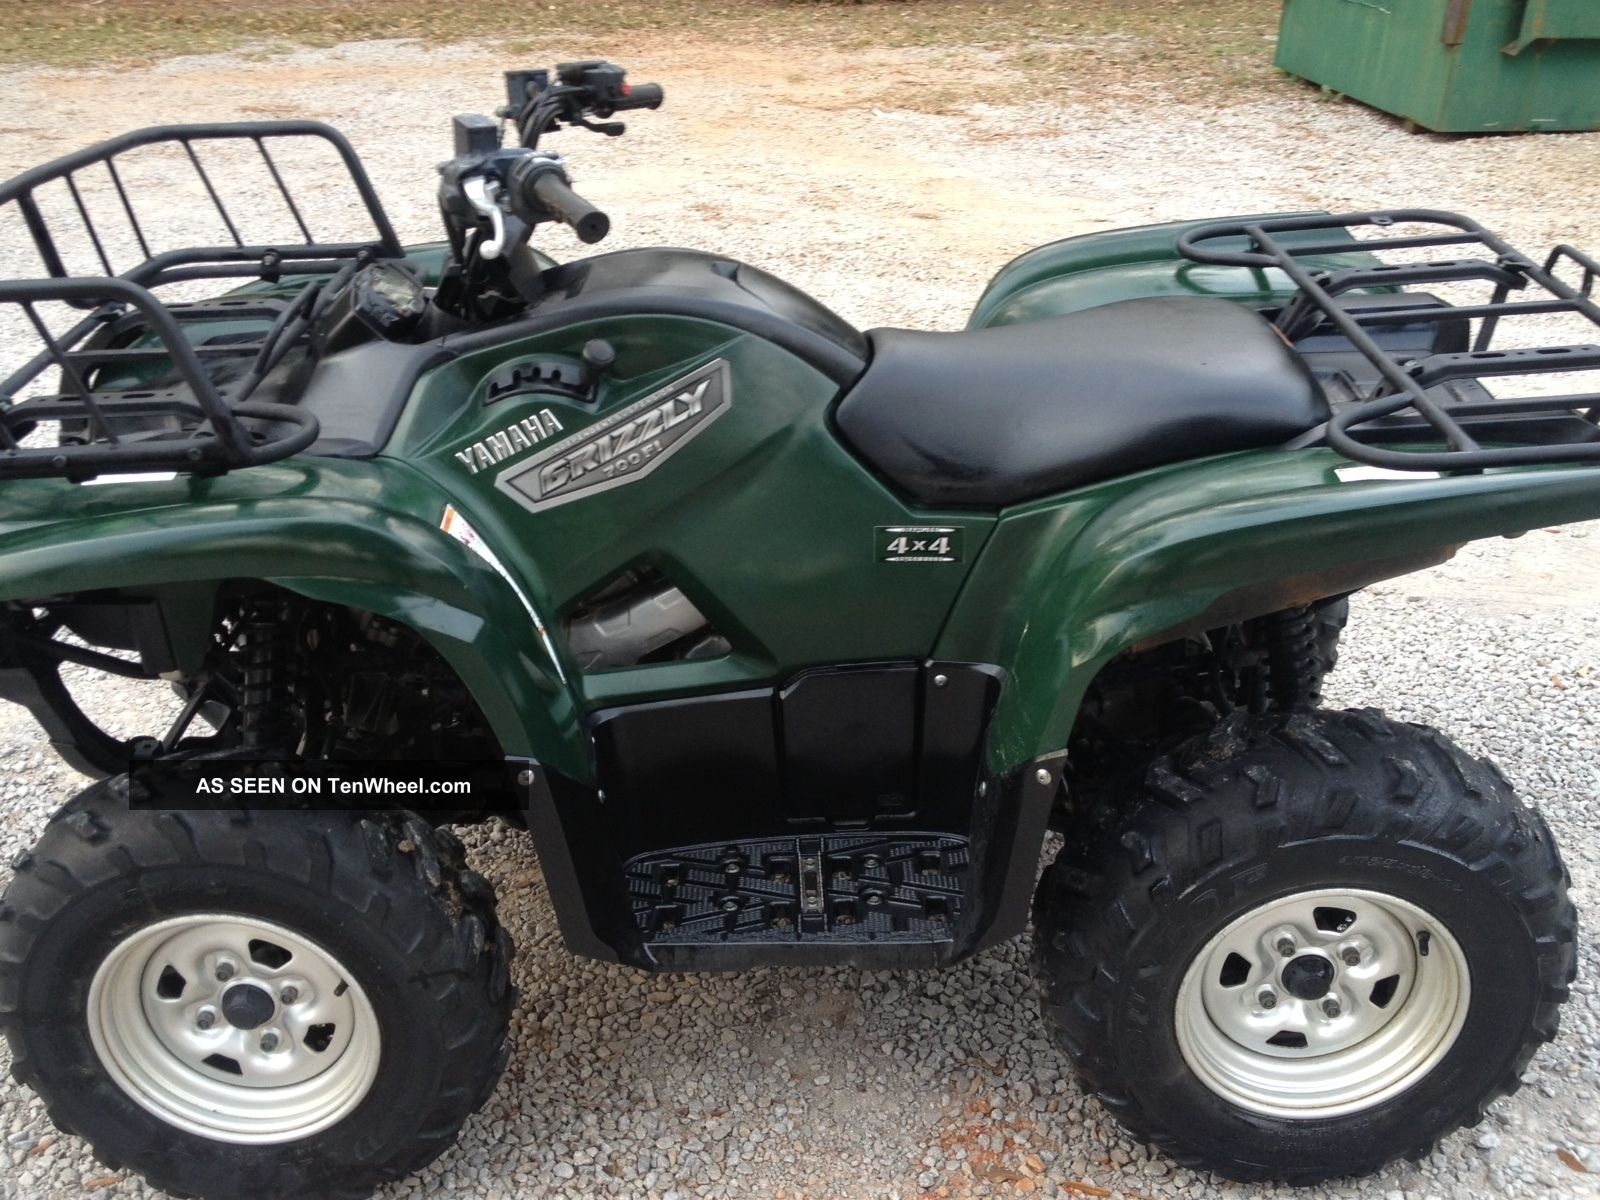 2018 honda foreman vs rubicon 500 atv differences autos post for 2018 yamaha grizzly 700 specs